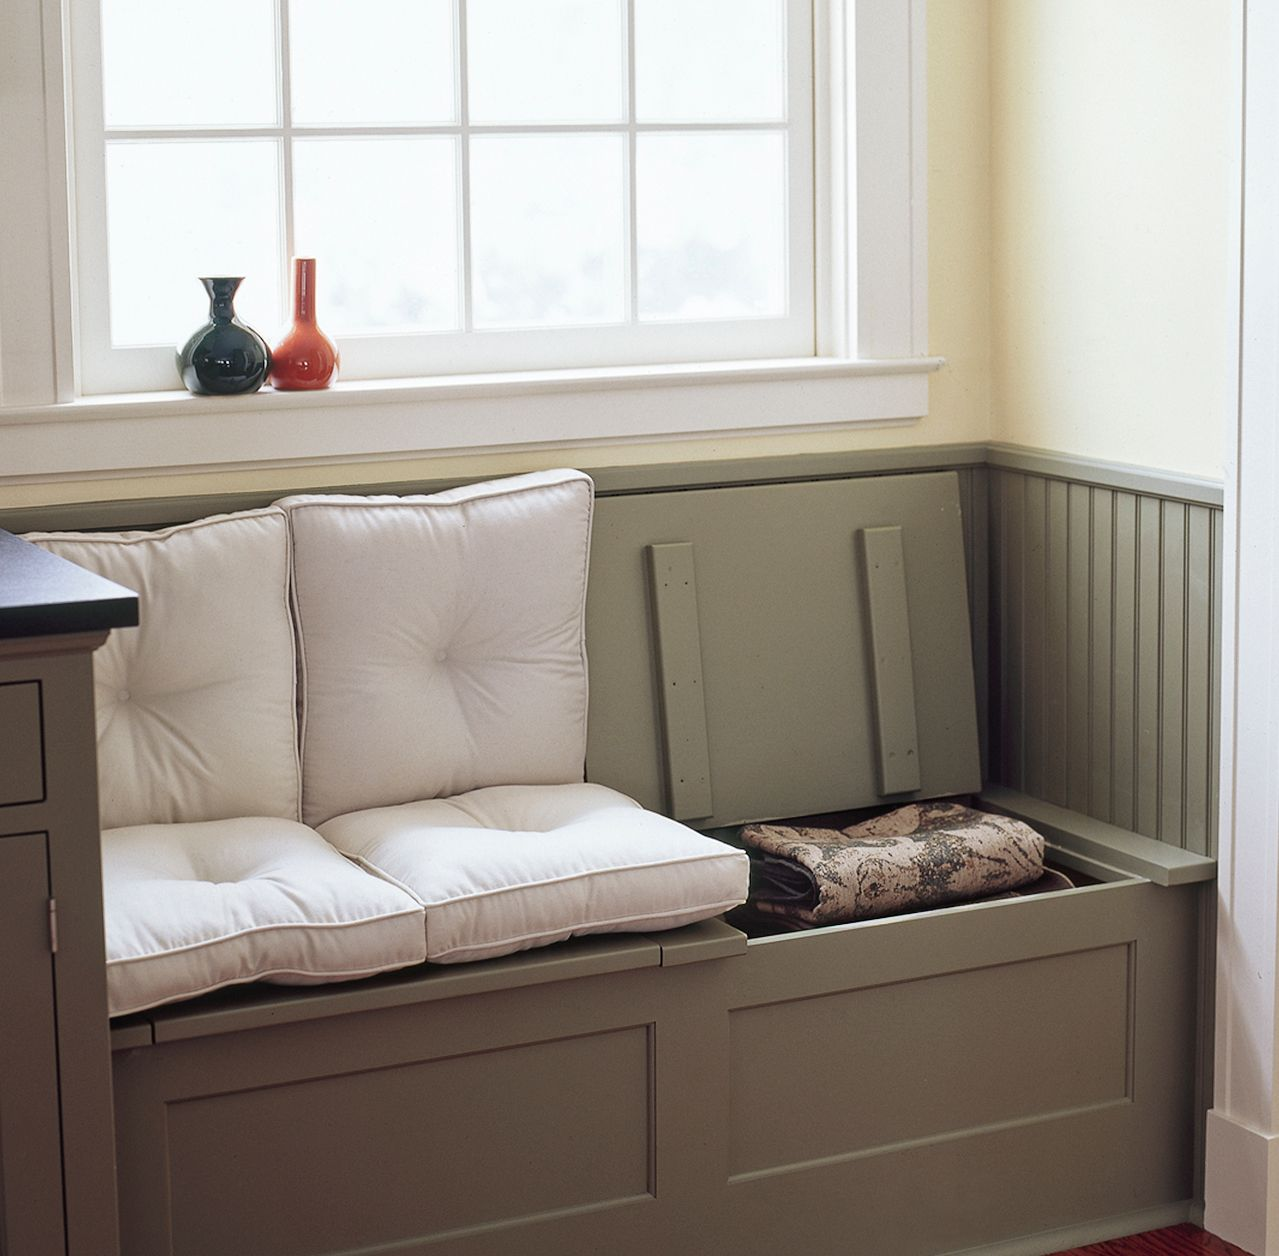 Build in Storage Hinged Top & 5 Window-Seat Storage Ideas Youu0027ll Love | HuffPost